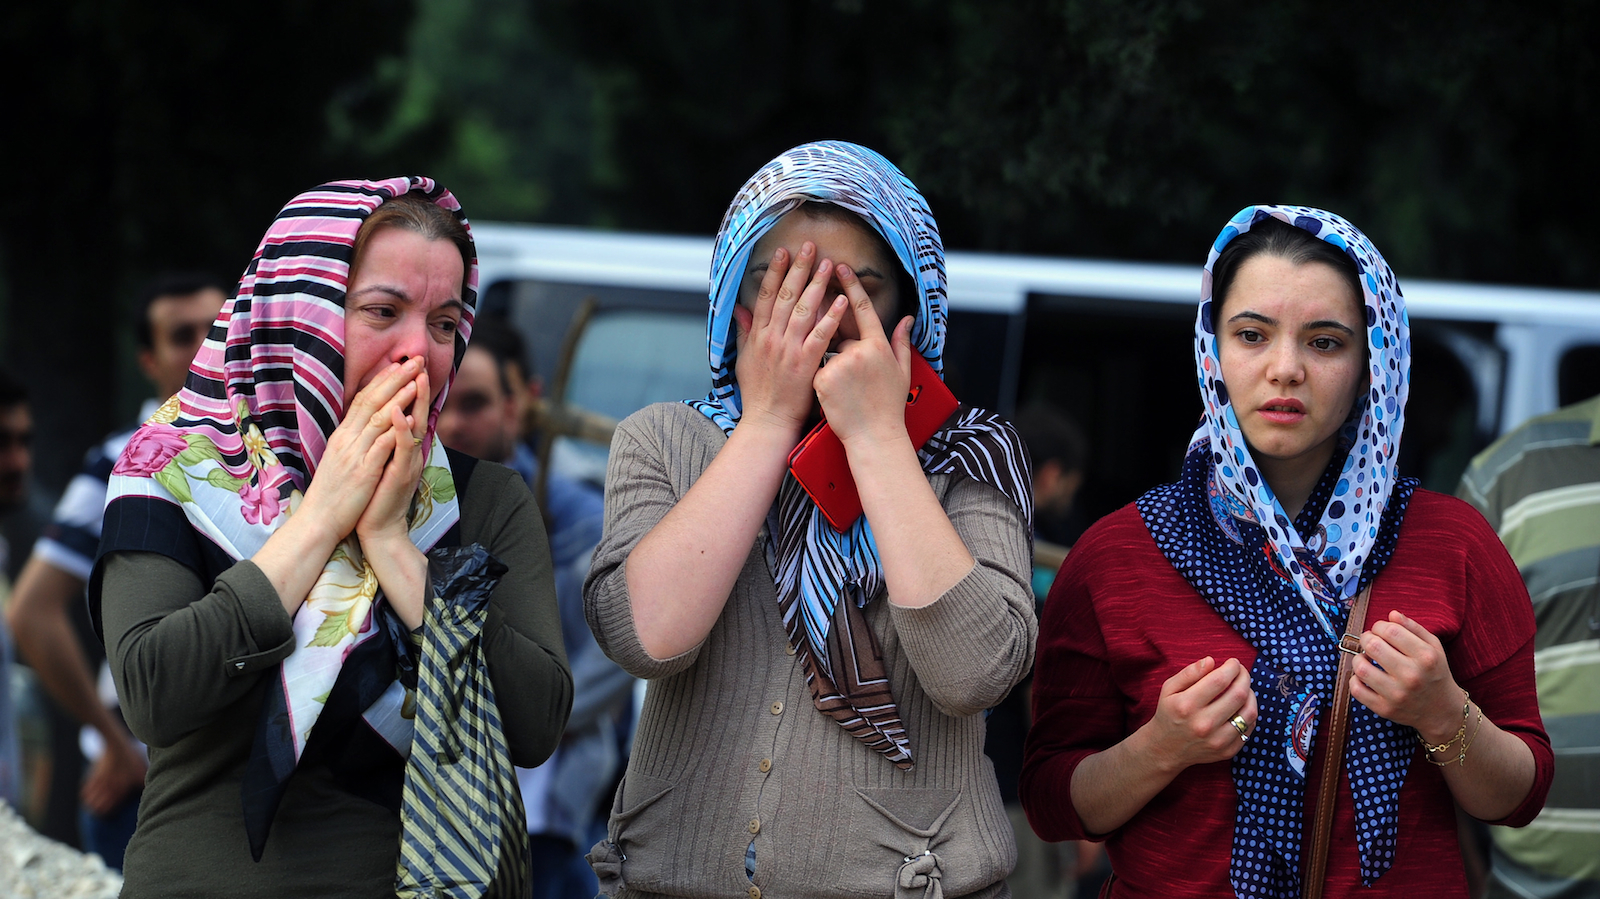 People attend a mine accident victim's burial in Soma, Turkey, Wednesday, May 14, 2014. Nearly 450 miners were rescued, the mining company said, but the fate of an unknown number of others remained unclear as bodies are still being brought to the surface and burials are underway after one of the world's deadliest mining disasters. (AP Photo/Emre Tazegul)